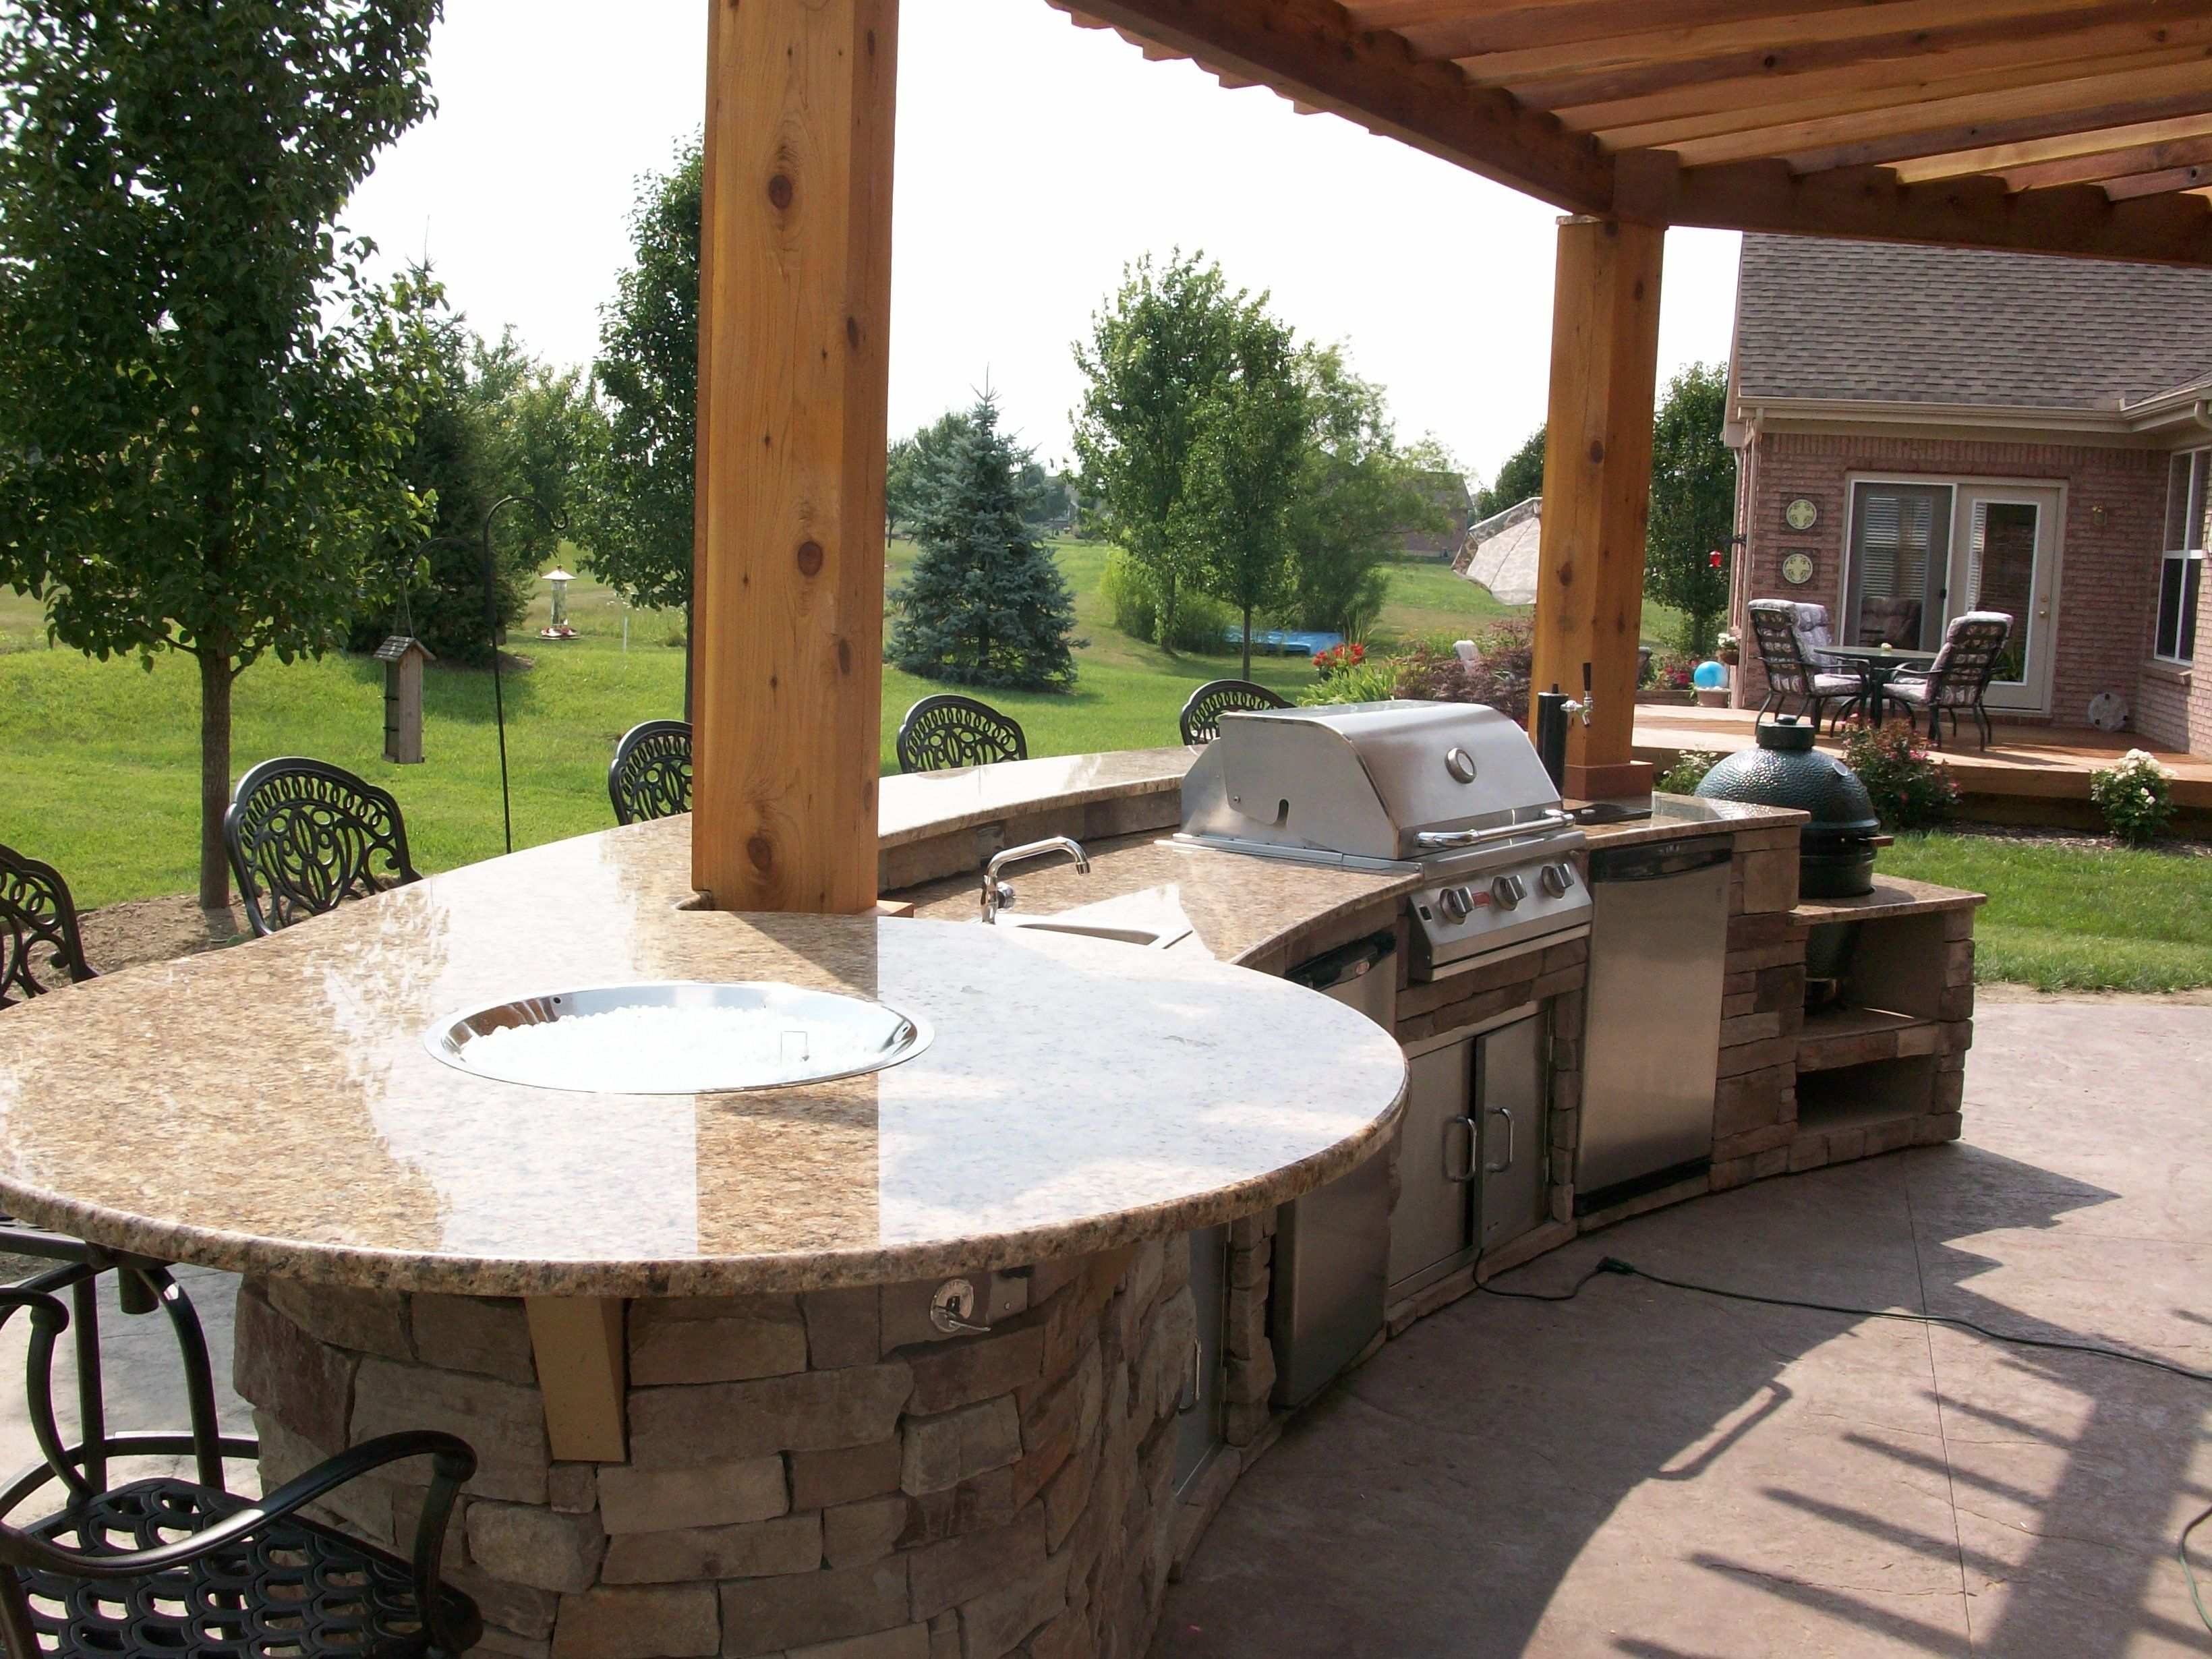 Outdoor Kitchen Firepit Bar Top Outdoor Kitchen Design Outdoor Kitchen Design Layout Outdoor Kitchen Countertops